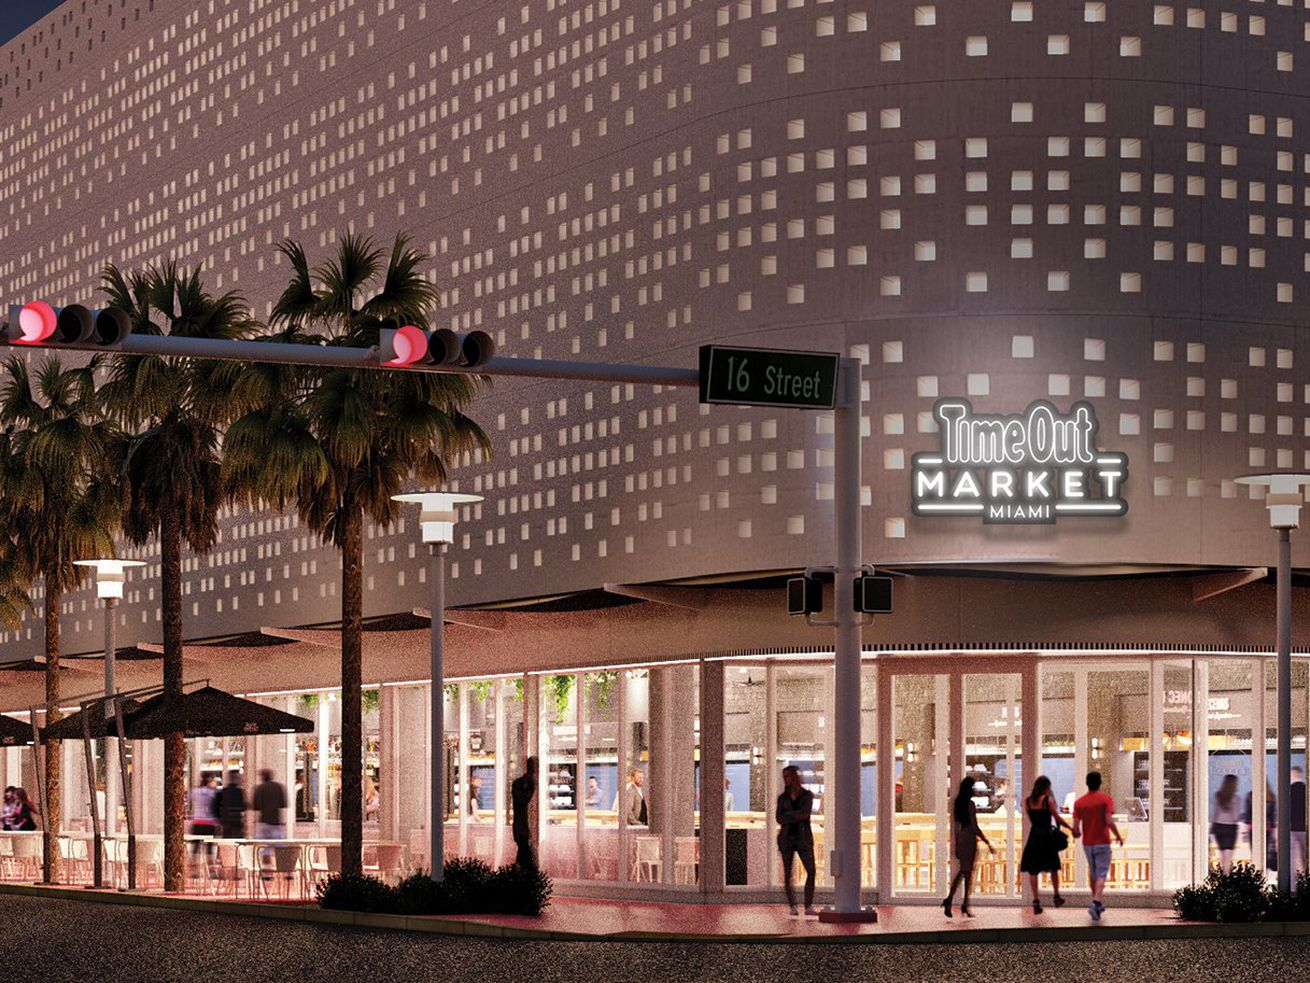 Rendering of the future Time Out Market Miami